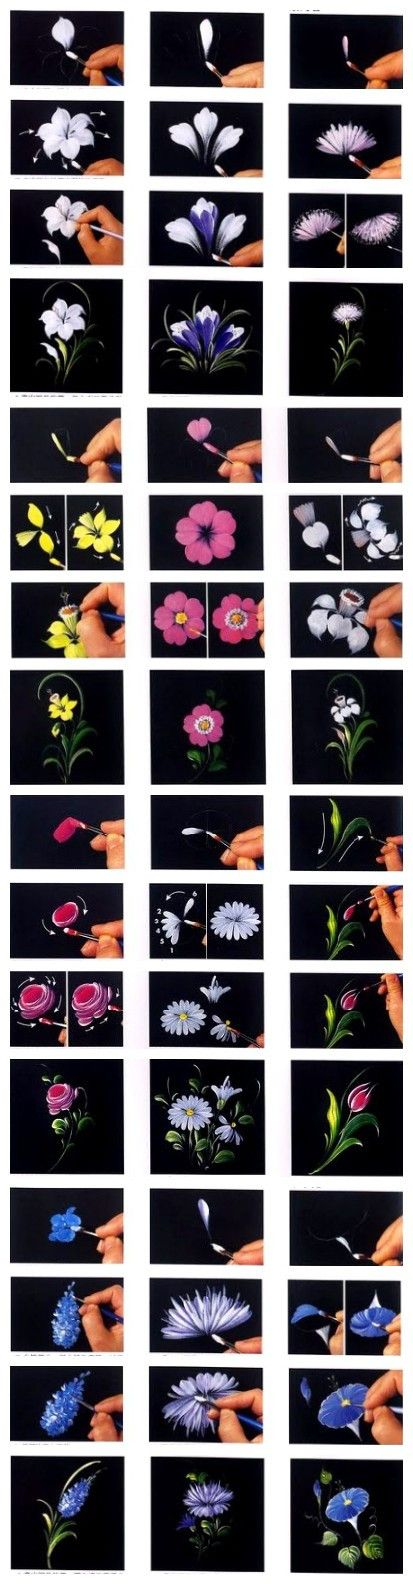 12 excellent ways to hand paint flowers                                                                                                                                                      More